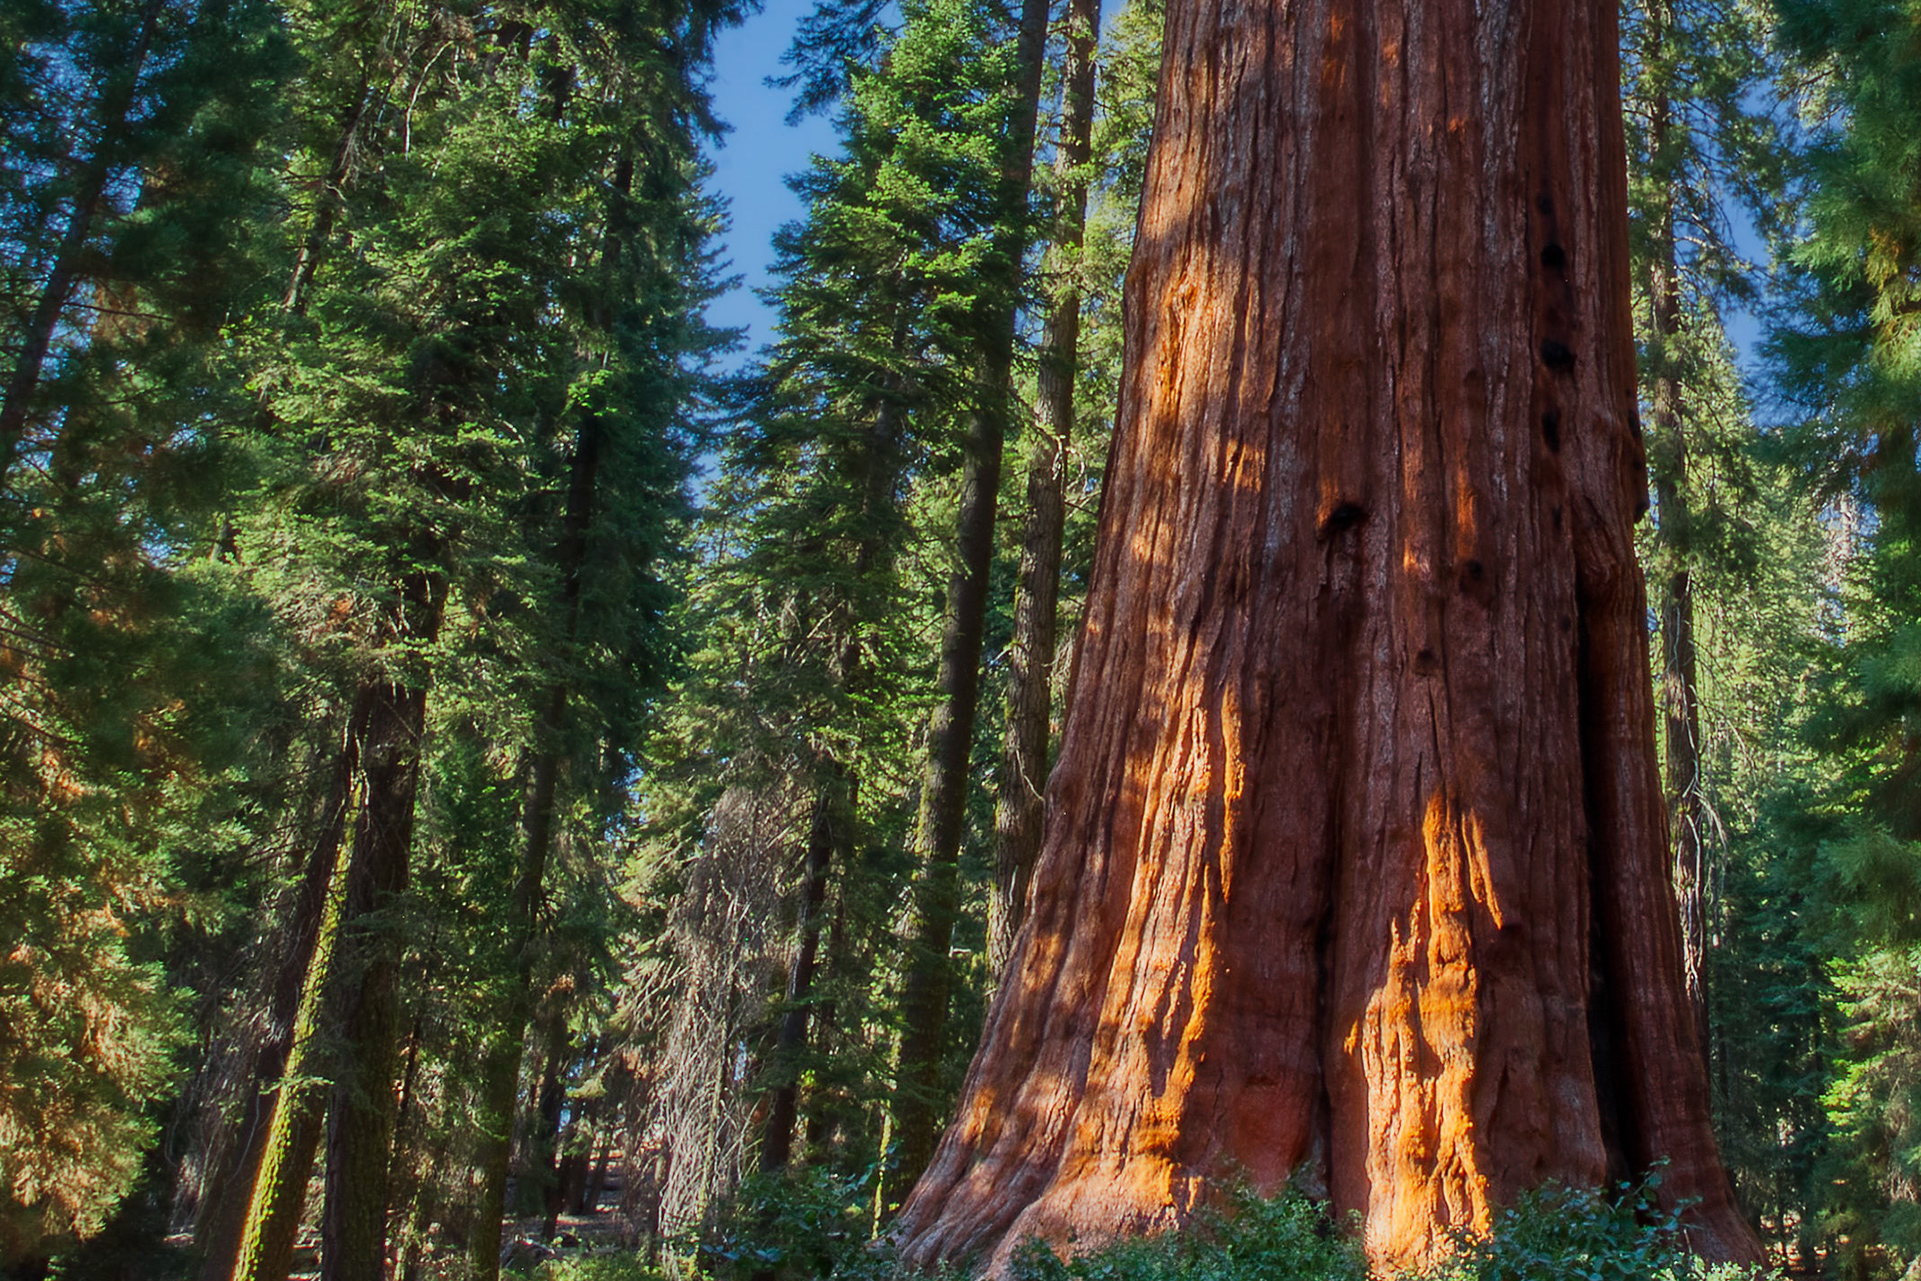 Sequoia National Park: Photographing the World's Largest Trees